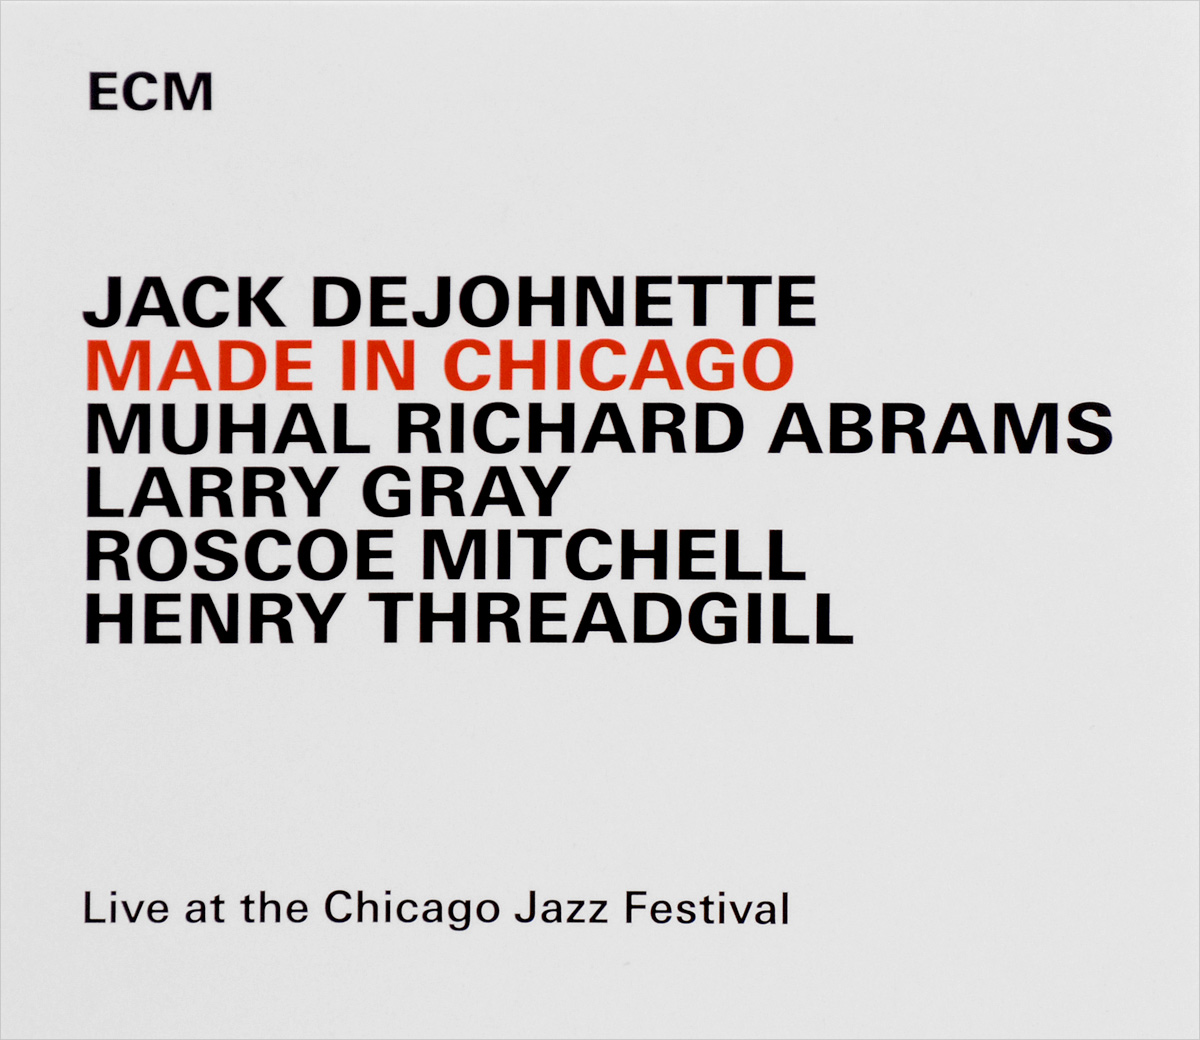 Джек Де Джонетт,Генри Триджилл,Roscoe Mitchell,Muhal Richard Abrams,Larry Gray Jack DeJohnette. Made In Chicago